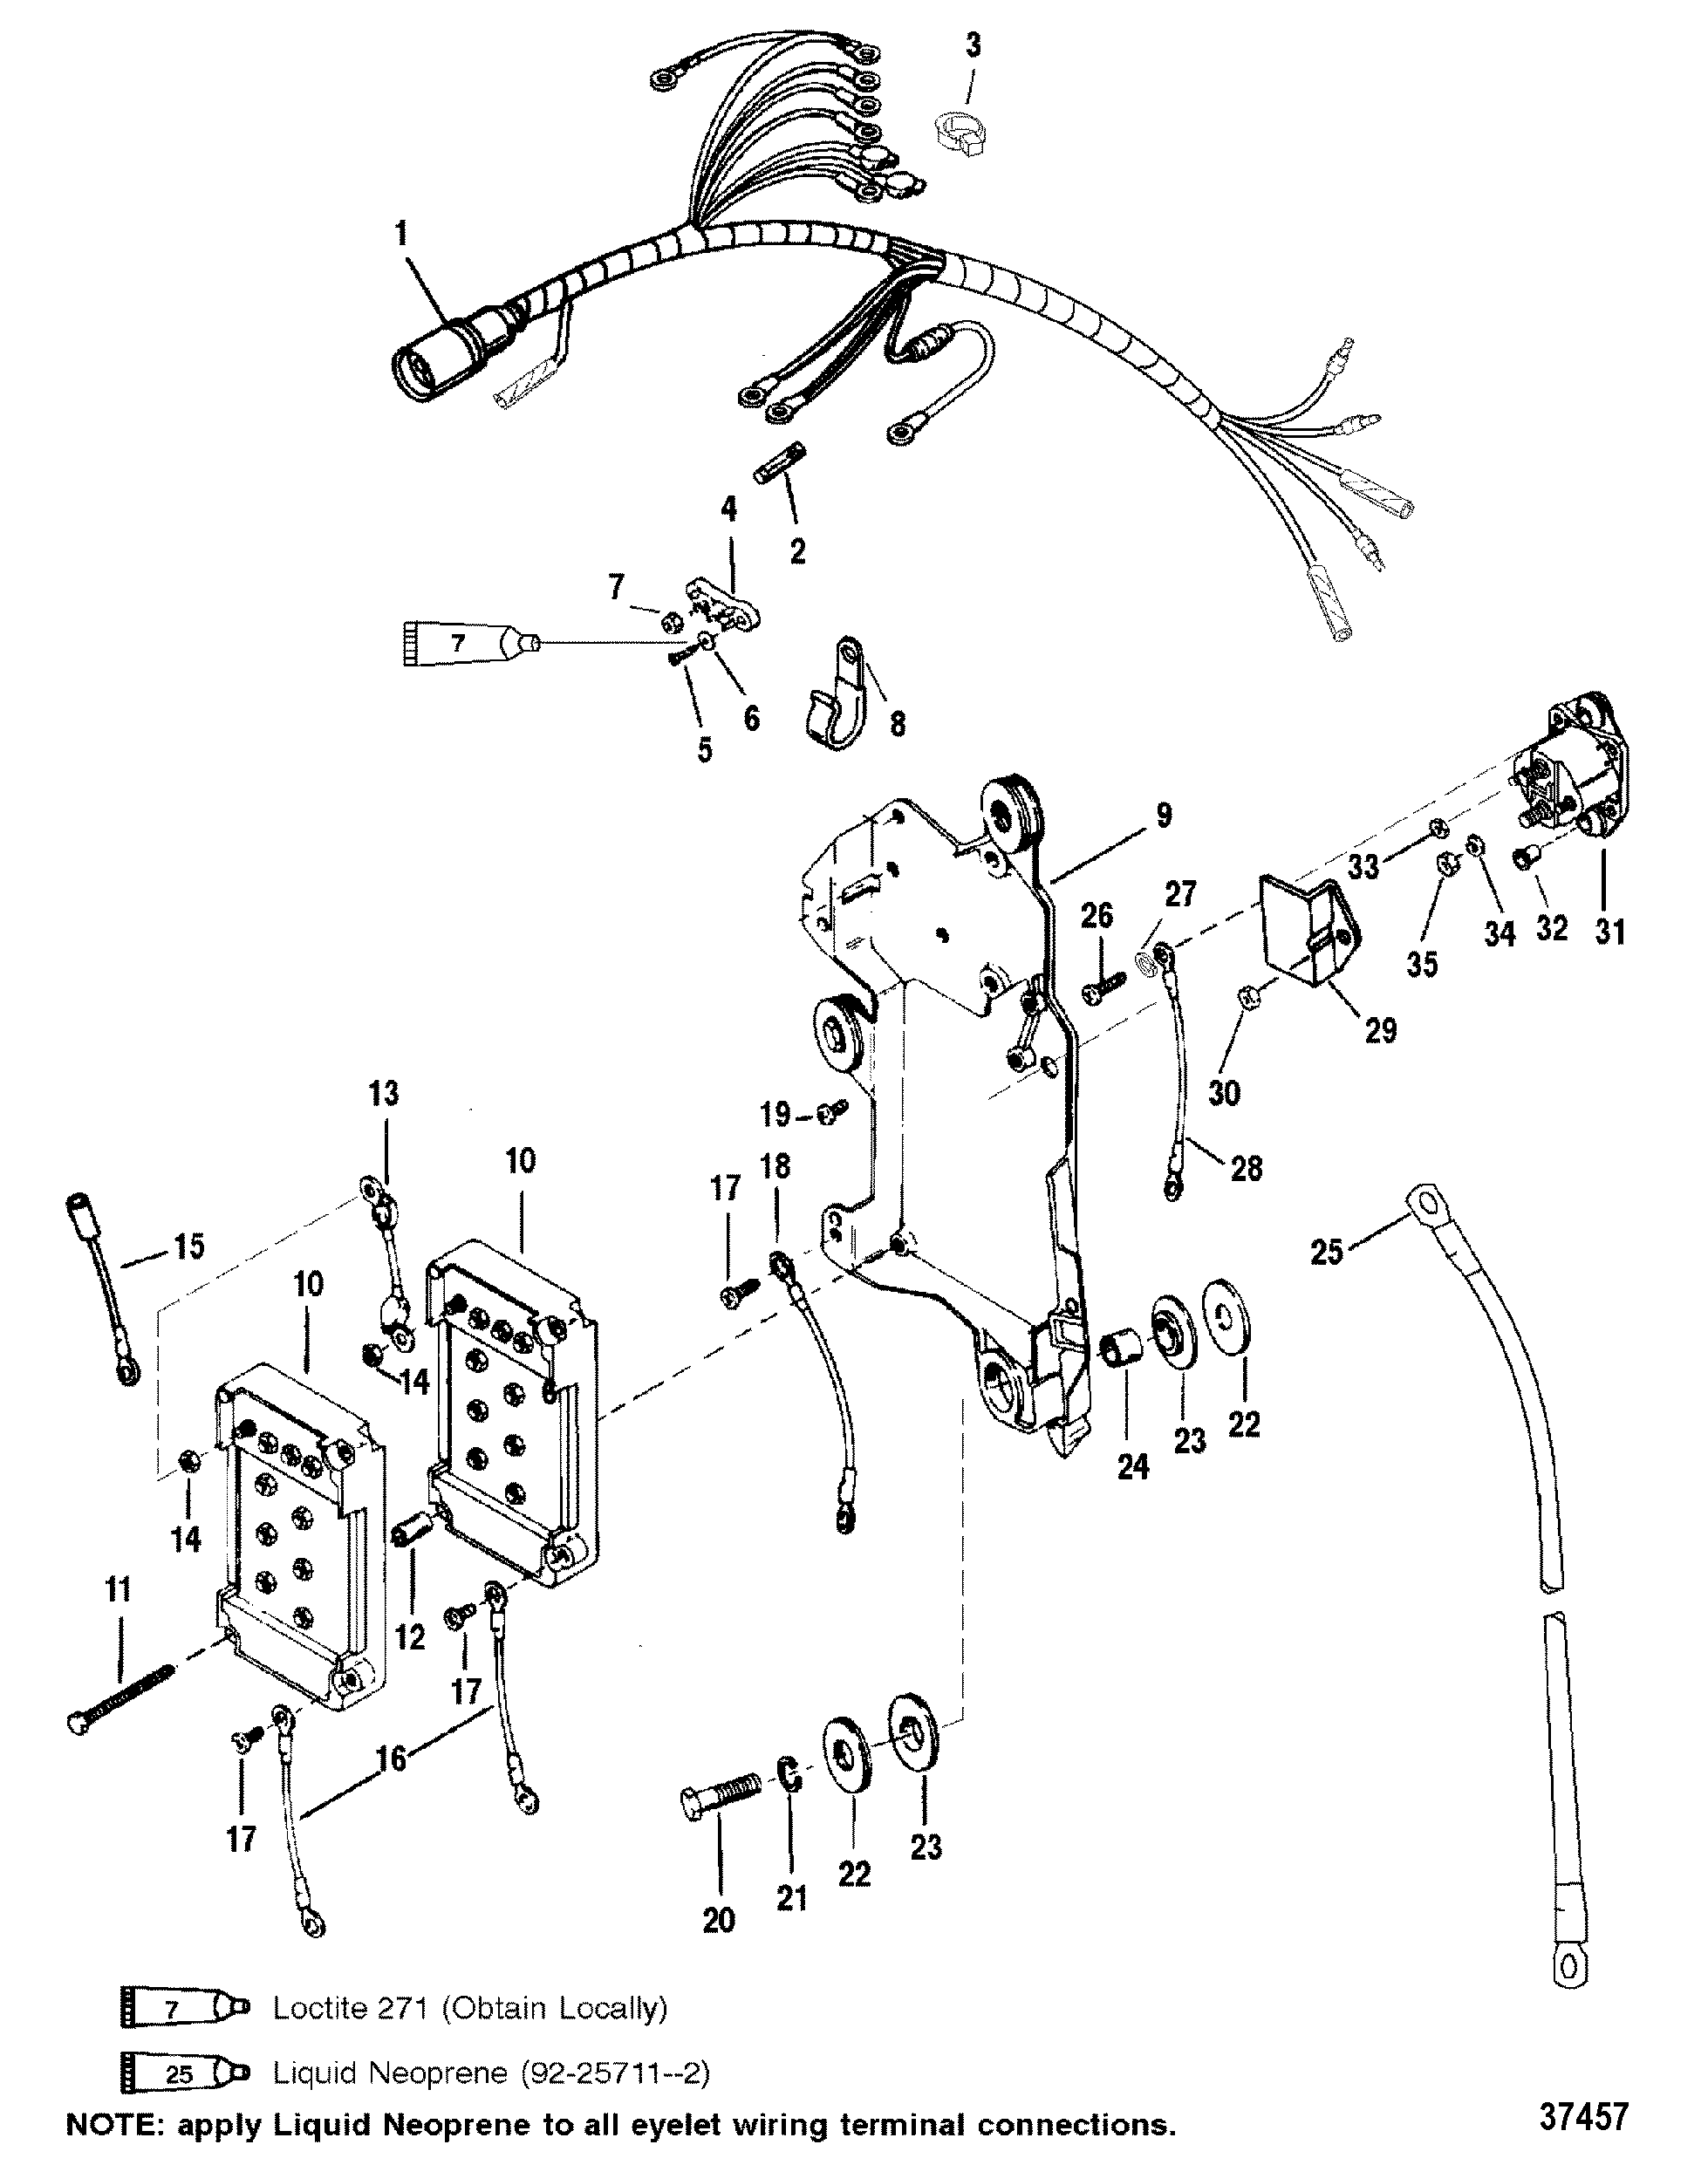 37457 wiring harness starter solenoid for mariner mercury 150 175 200 efi mercury 14 pin wiring harness diagram at soozxer.org